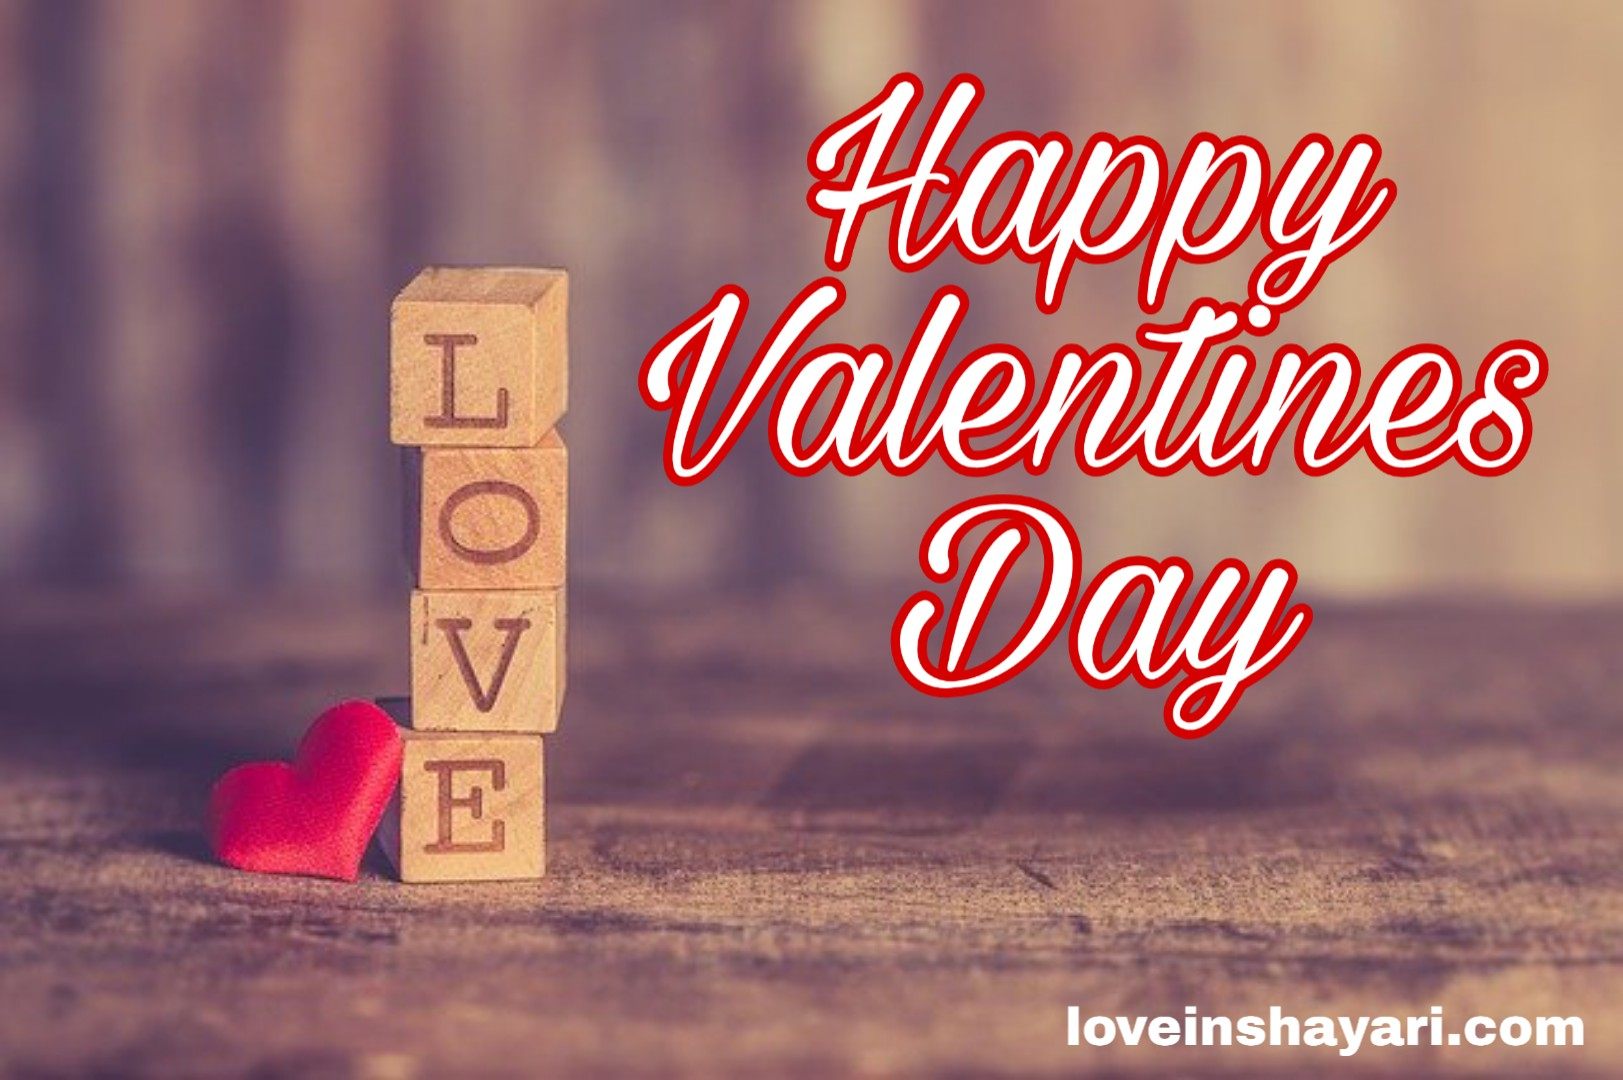 Valentine's day images shayari wishes quotes sms